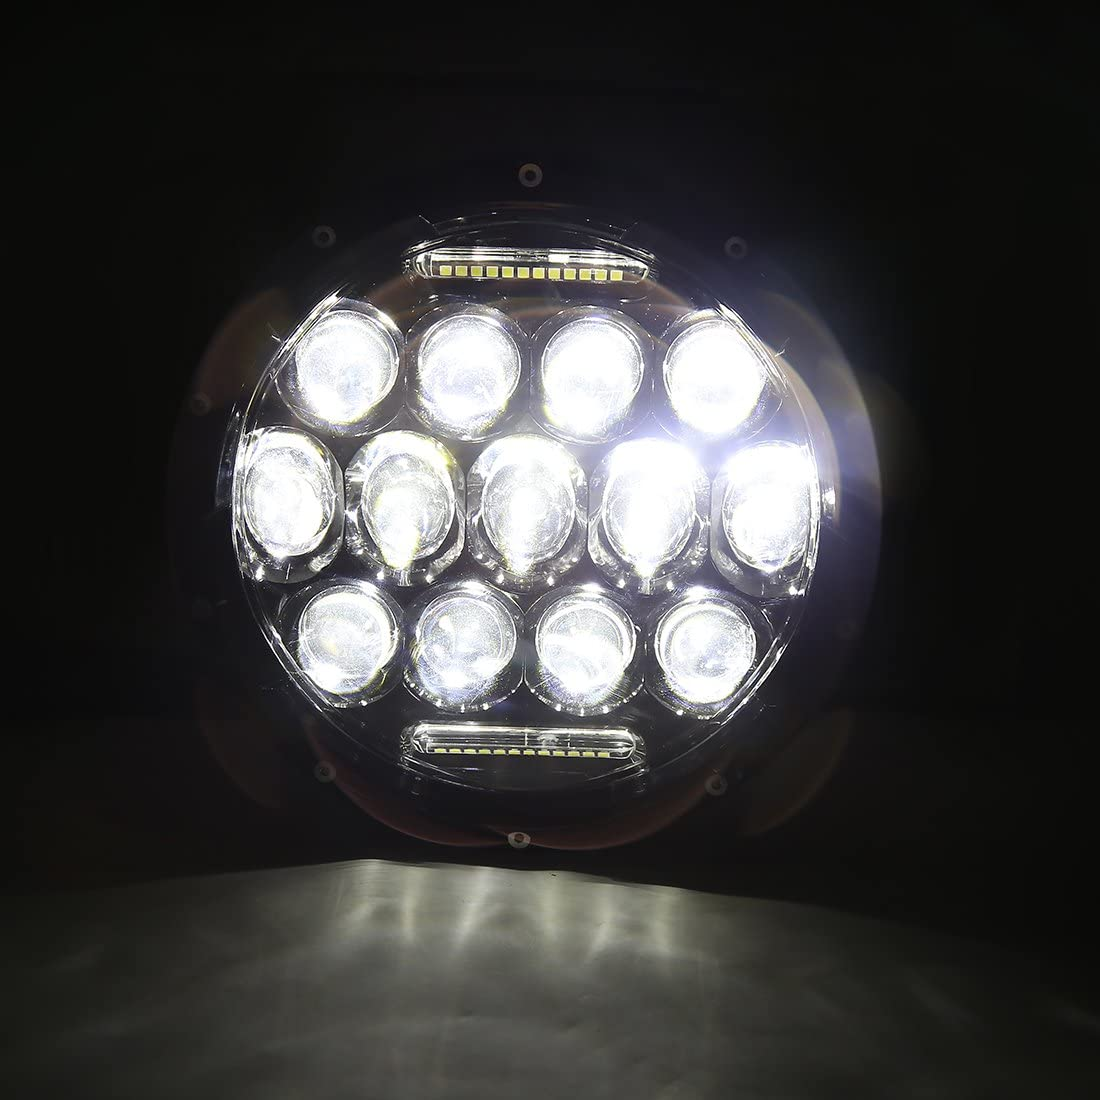 uxcell 7 inches 75W Round LED Headlight Black Car H4 H13 DRL High Low Head Bulb